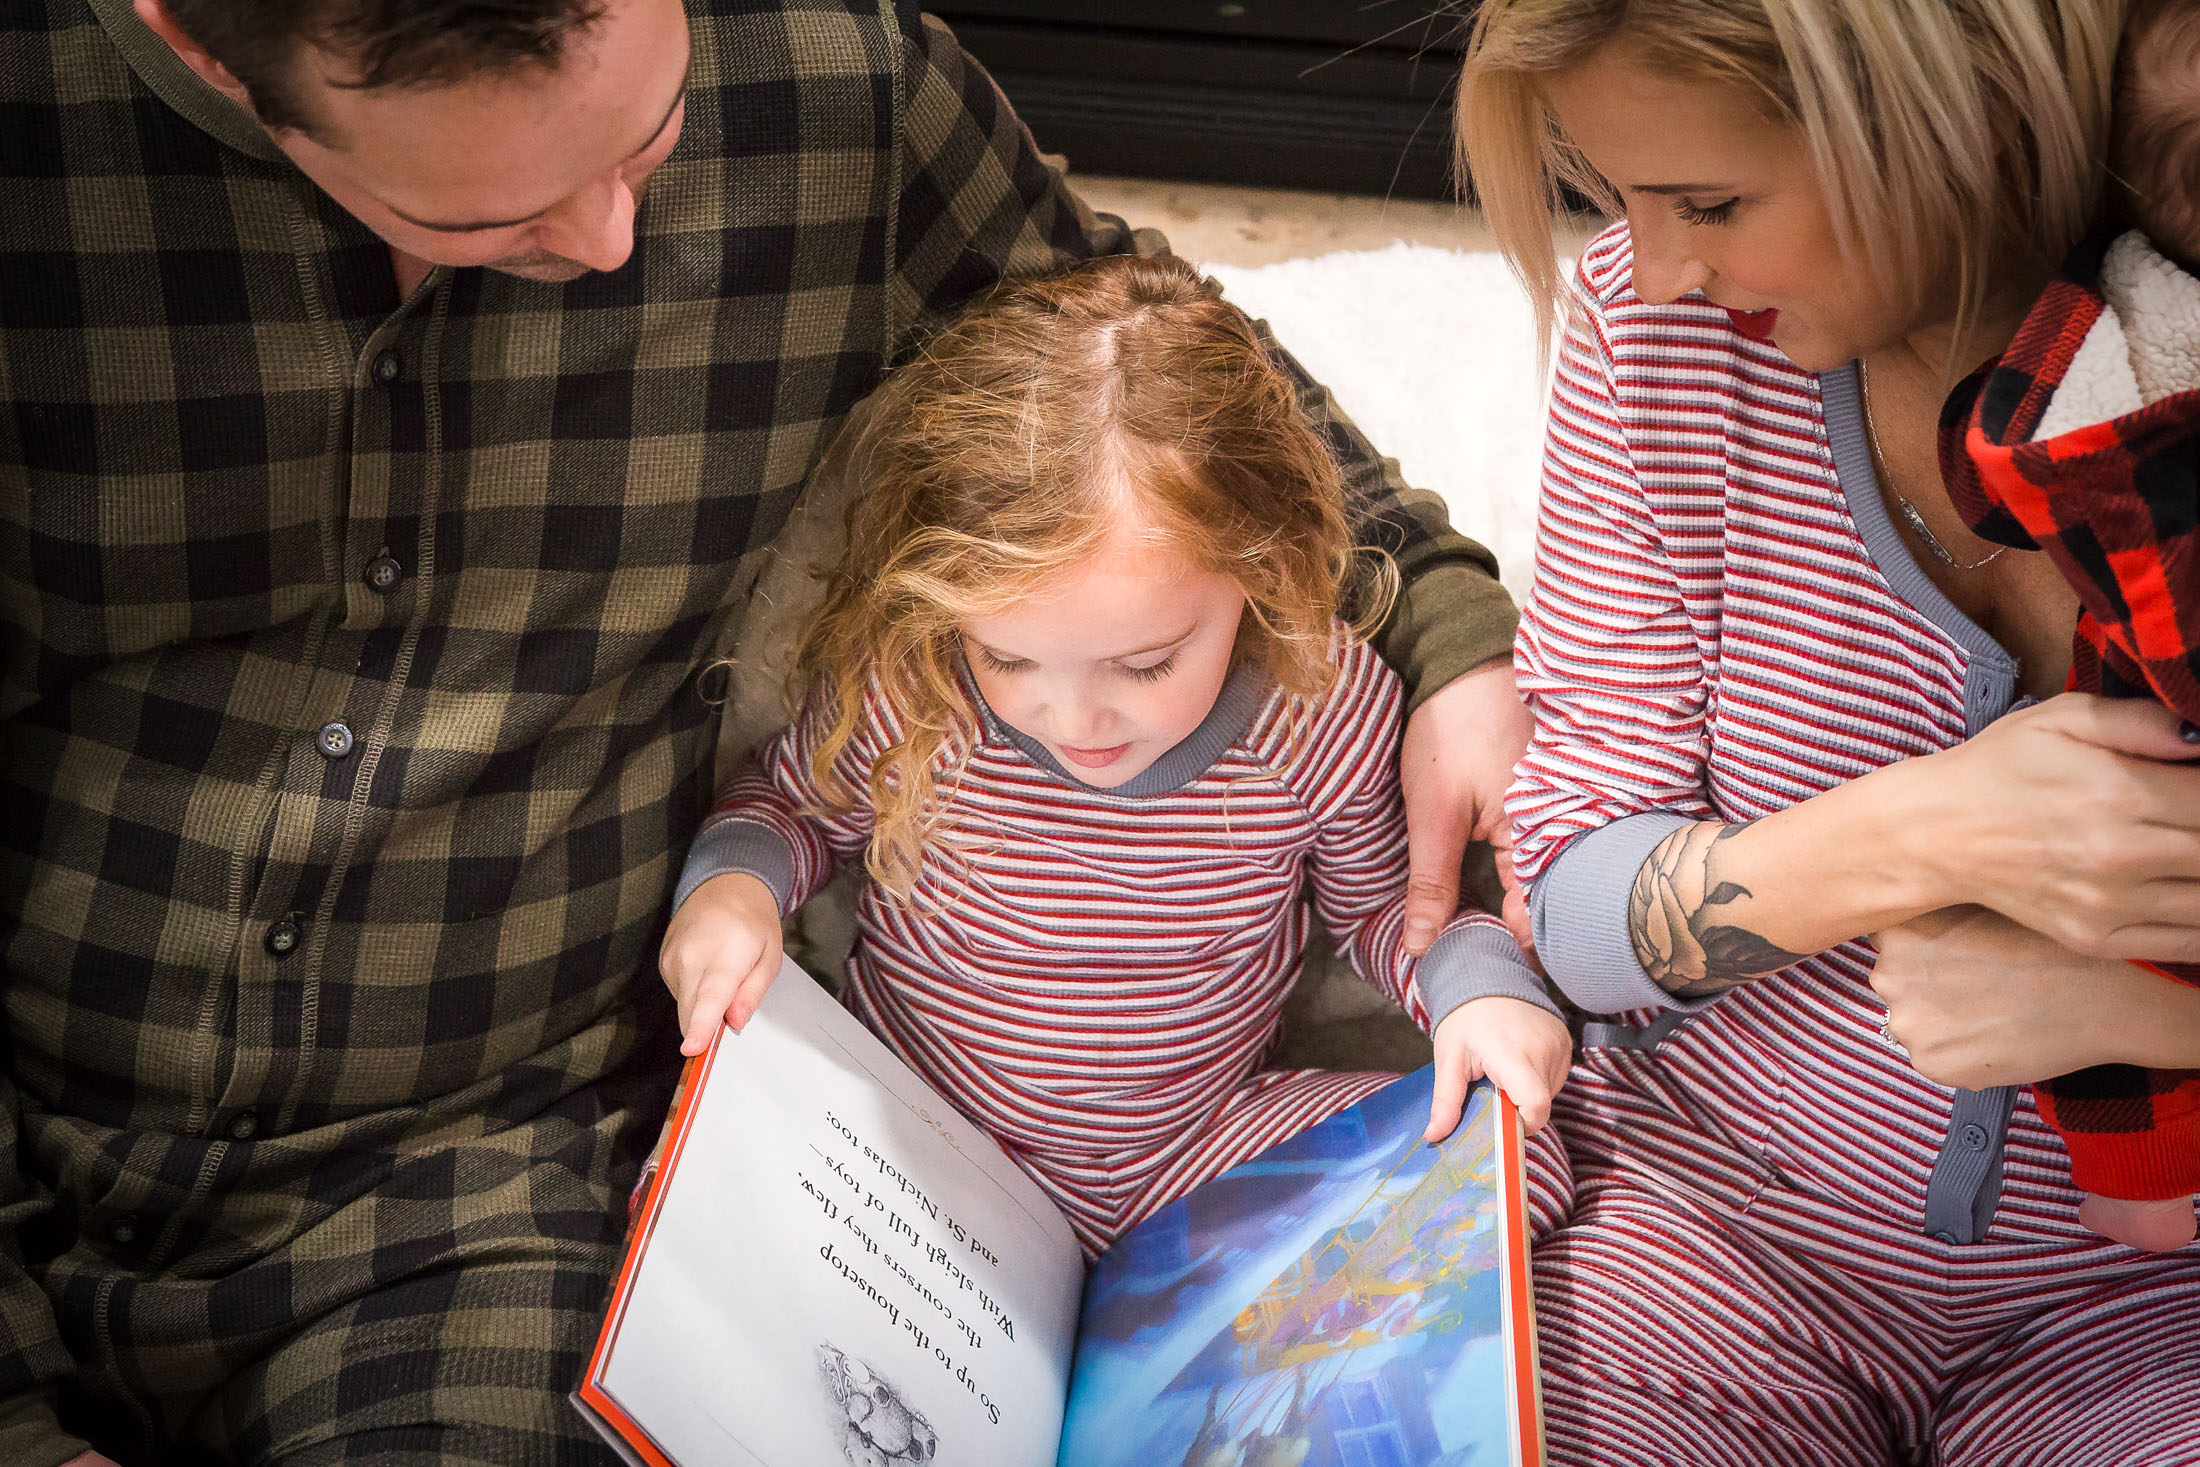 Who wants to get cozy? Well, we do...And when it comes to matching pajamas, you can't go wrong with Jockey Fam Jams — they're onesies! Woot!